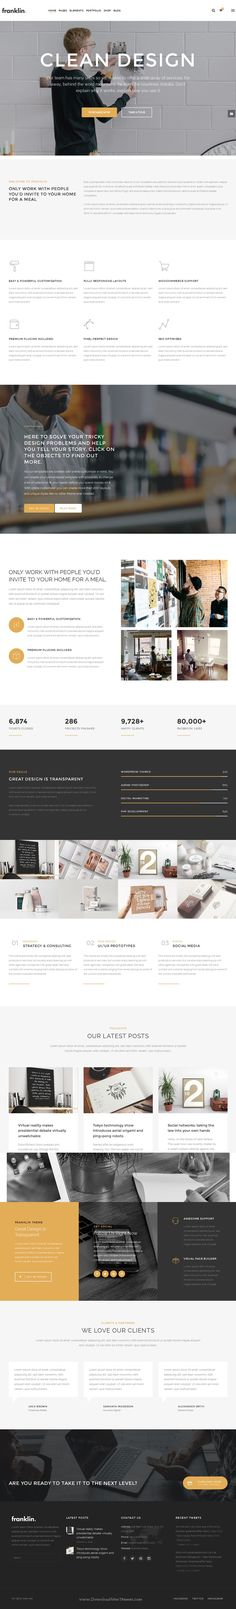 Franklin is creative, fully responsive and powerful WordPress #Theme for business, creative #agency or personal portfolio, photography or a blogging #website. Download Now!